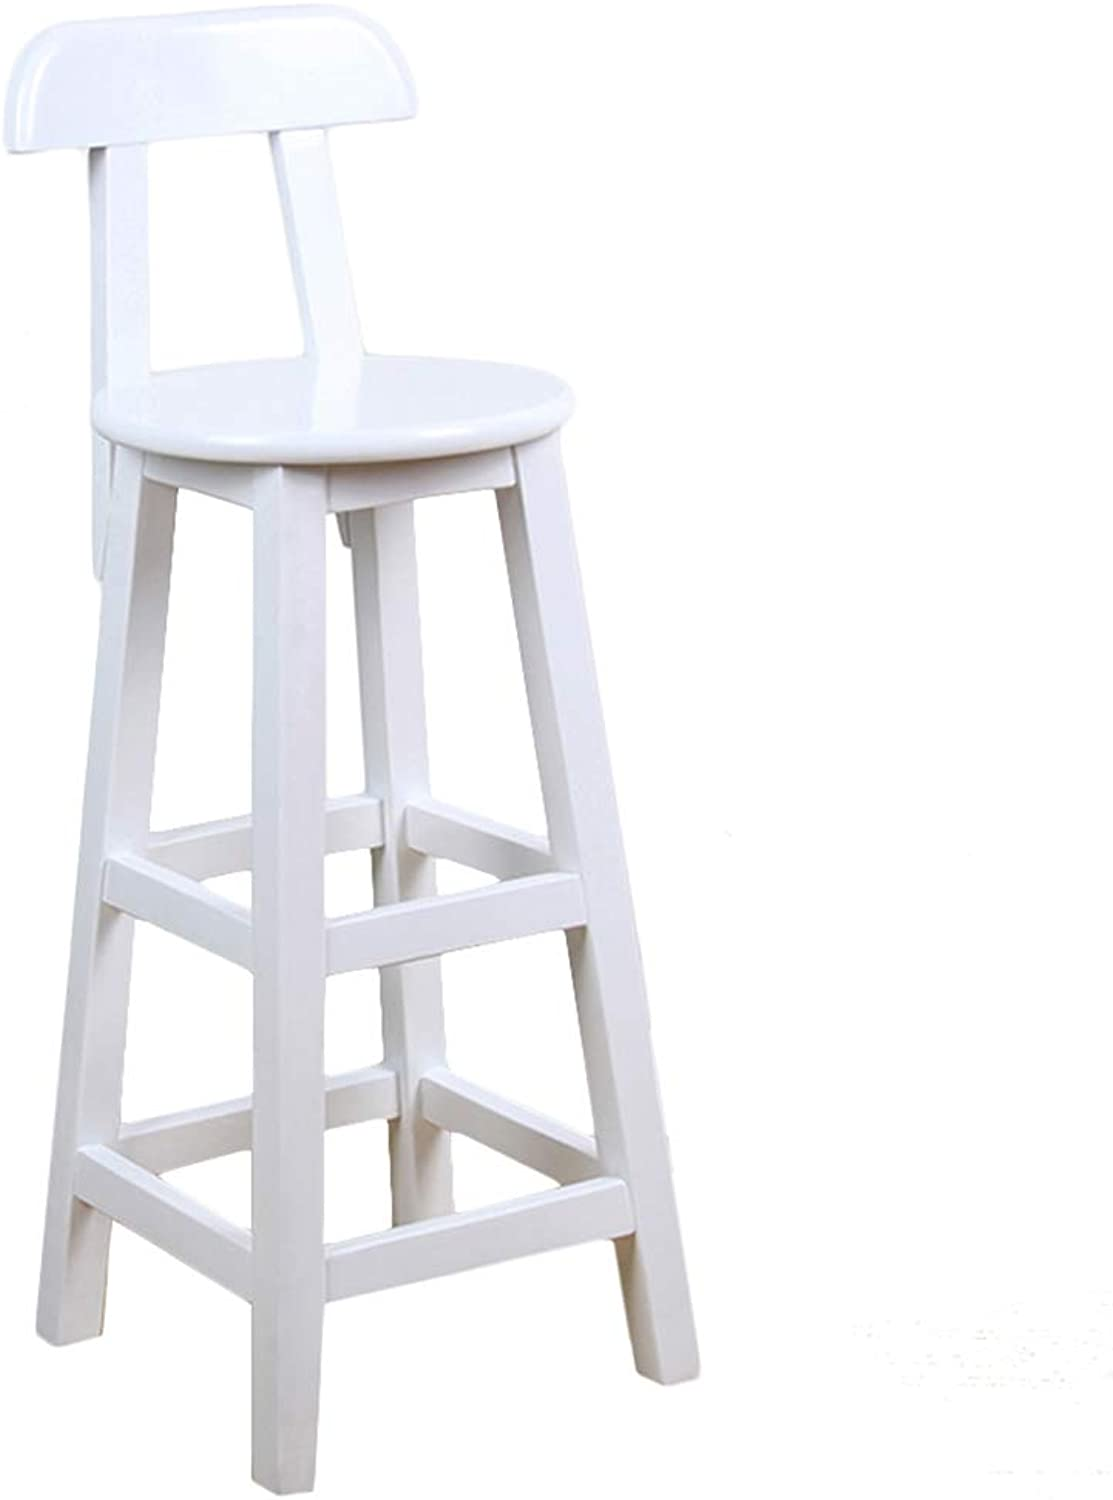 LIQICAI Wooden White Bar Stool with Backrest and Footrest Breakfast Extremely Comfy, 4-Leg Structure, 3 Height Optional (color   1 PCS, Size   36x36x80cm)